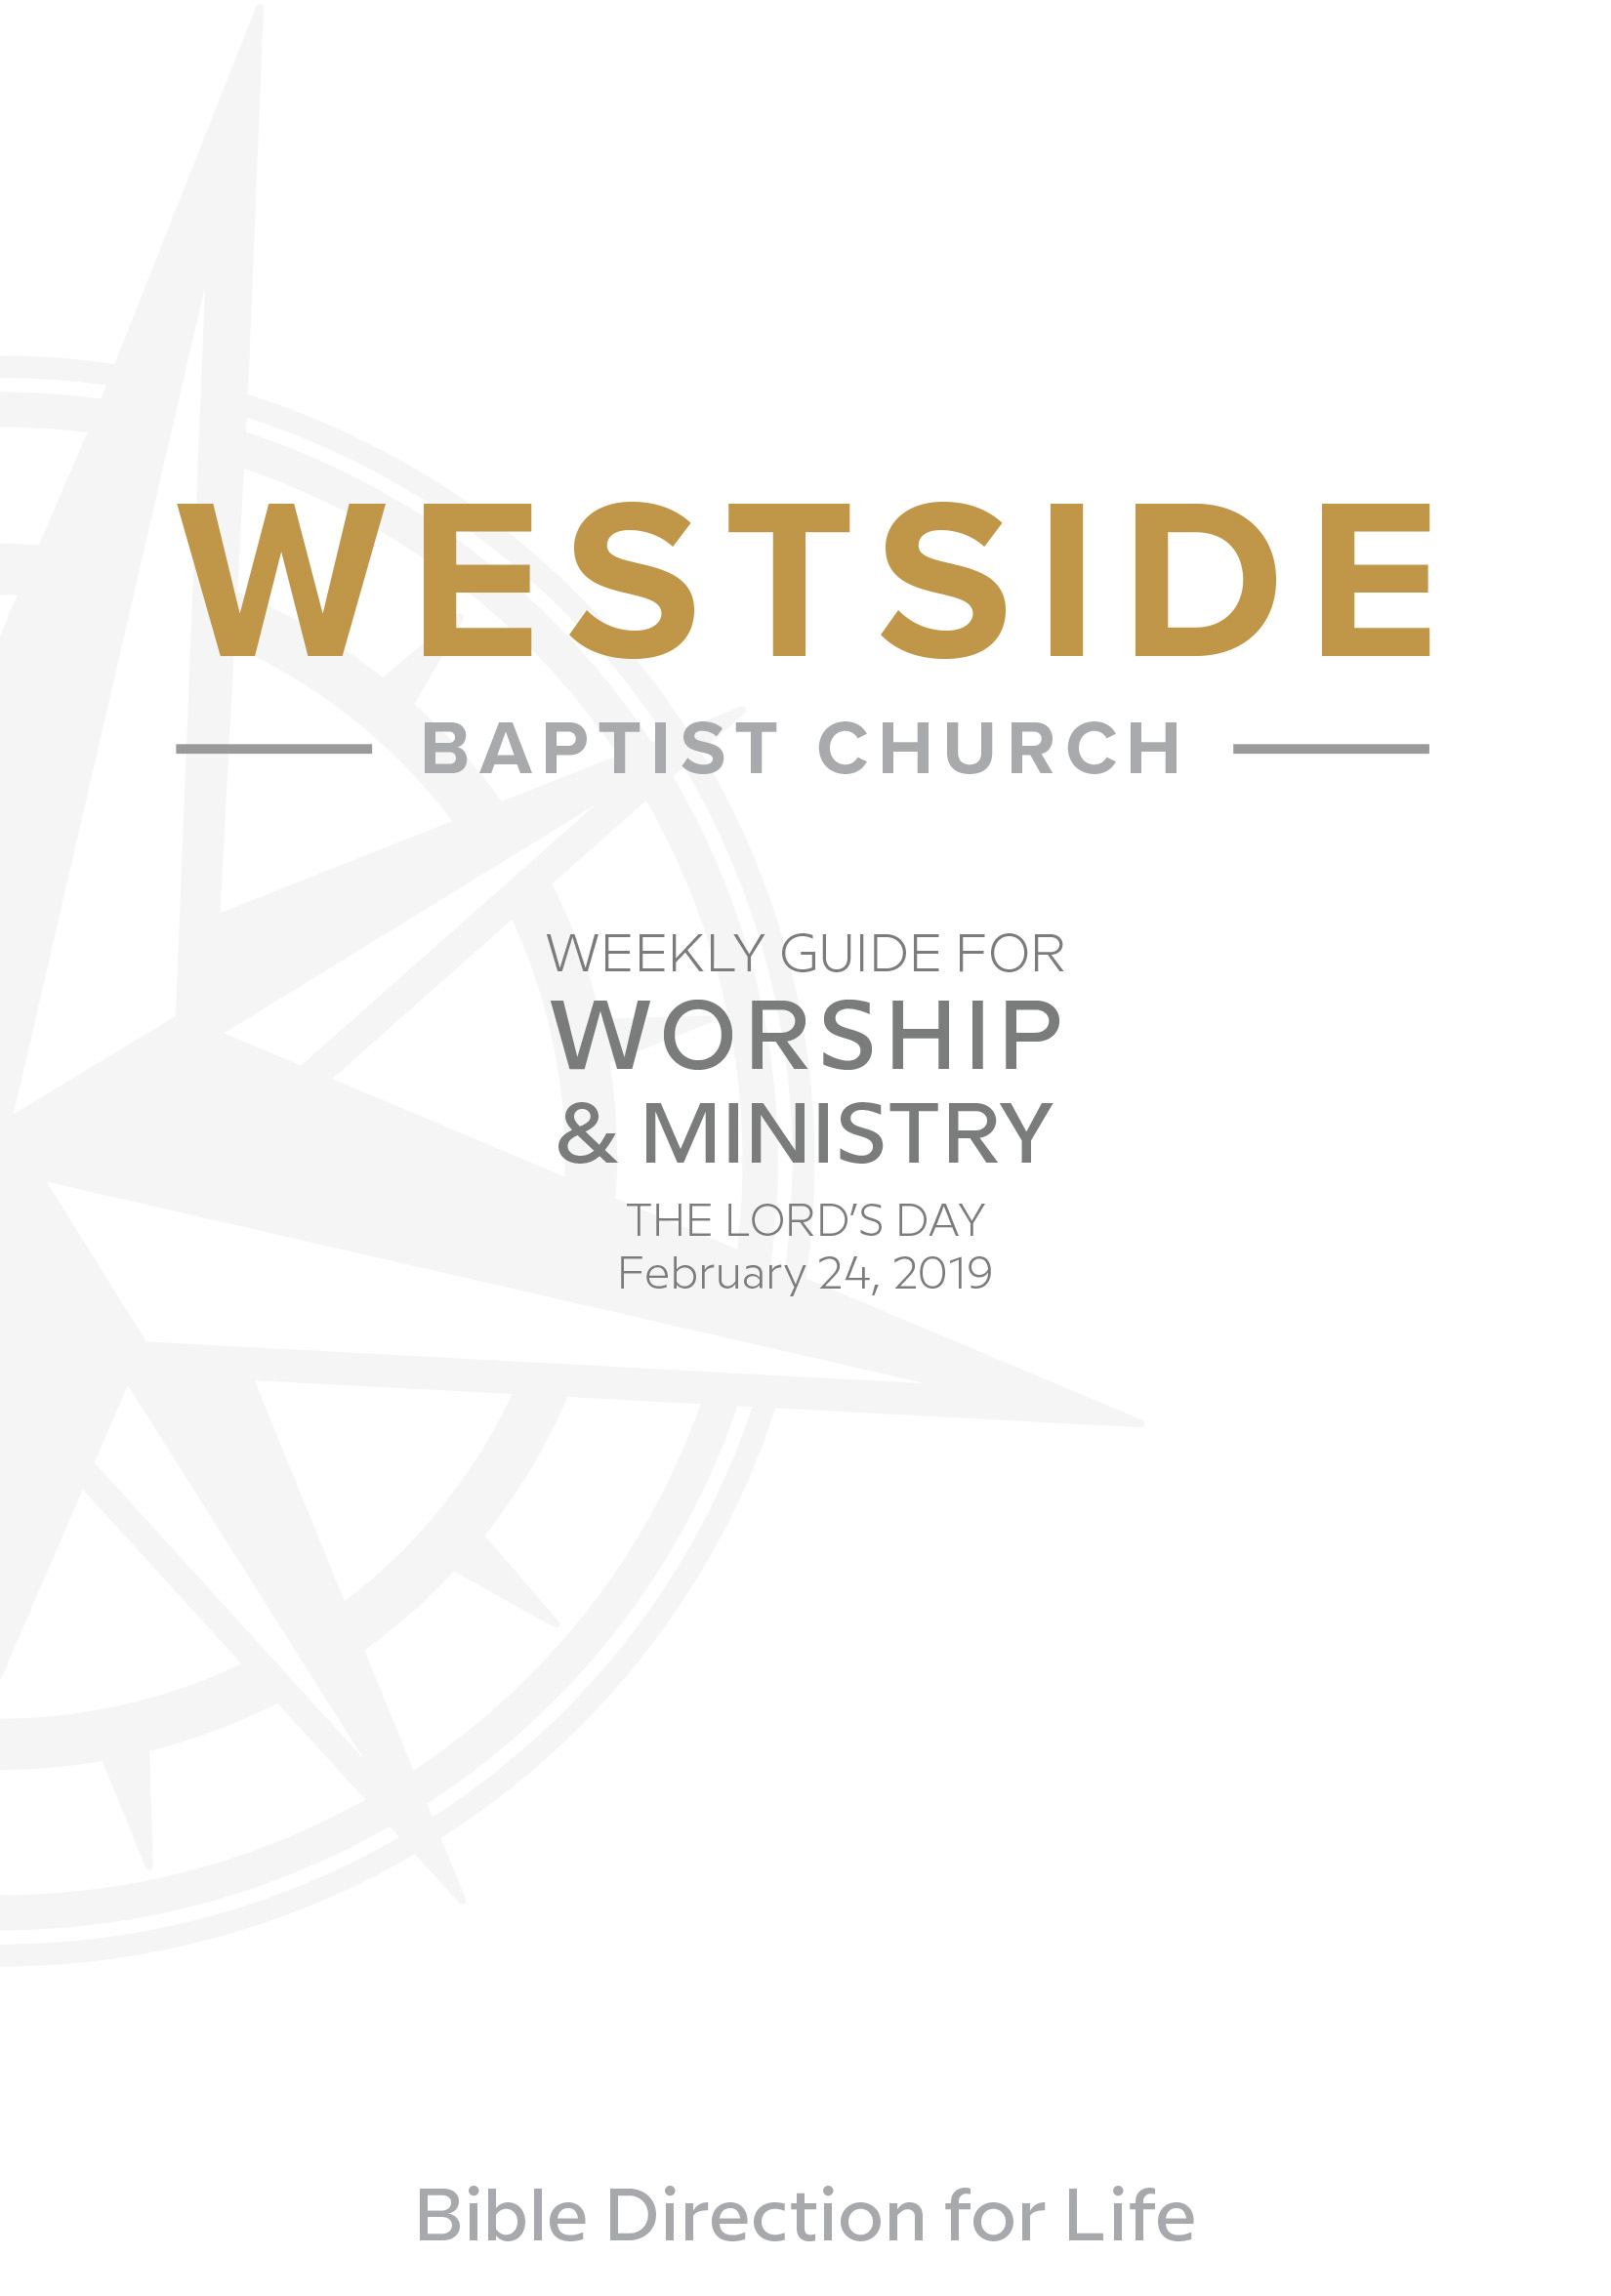 Weekly Guide for Worship and Ministry—February 24